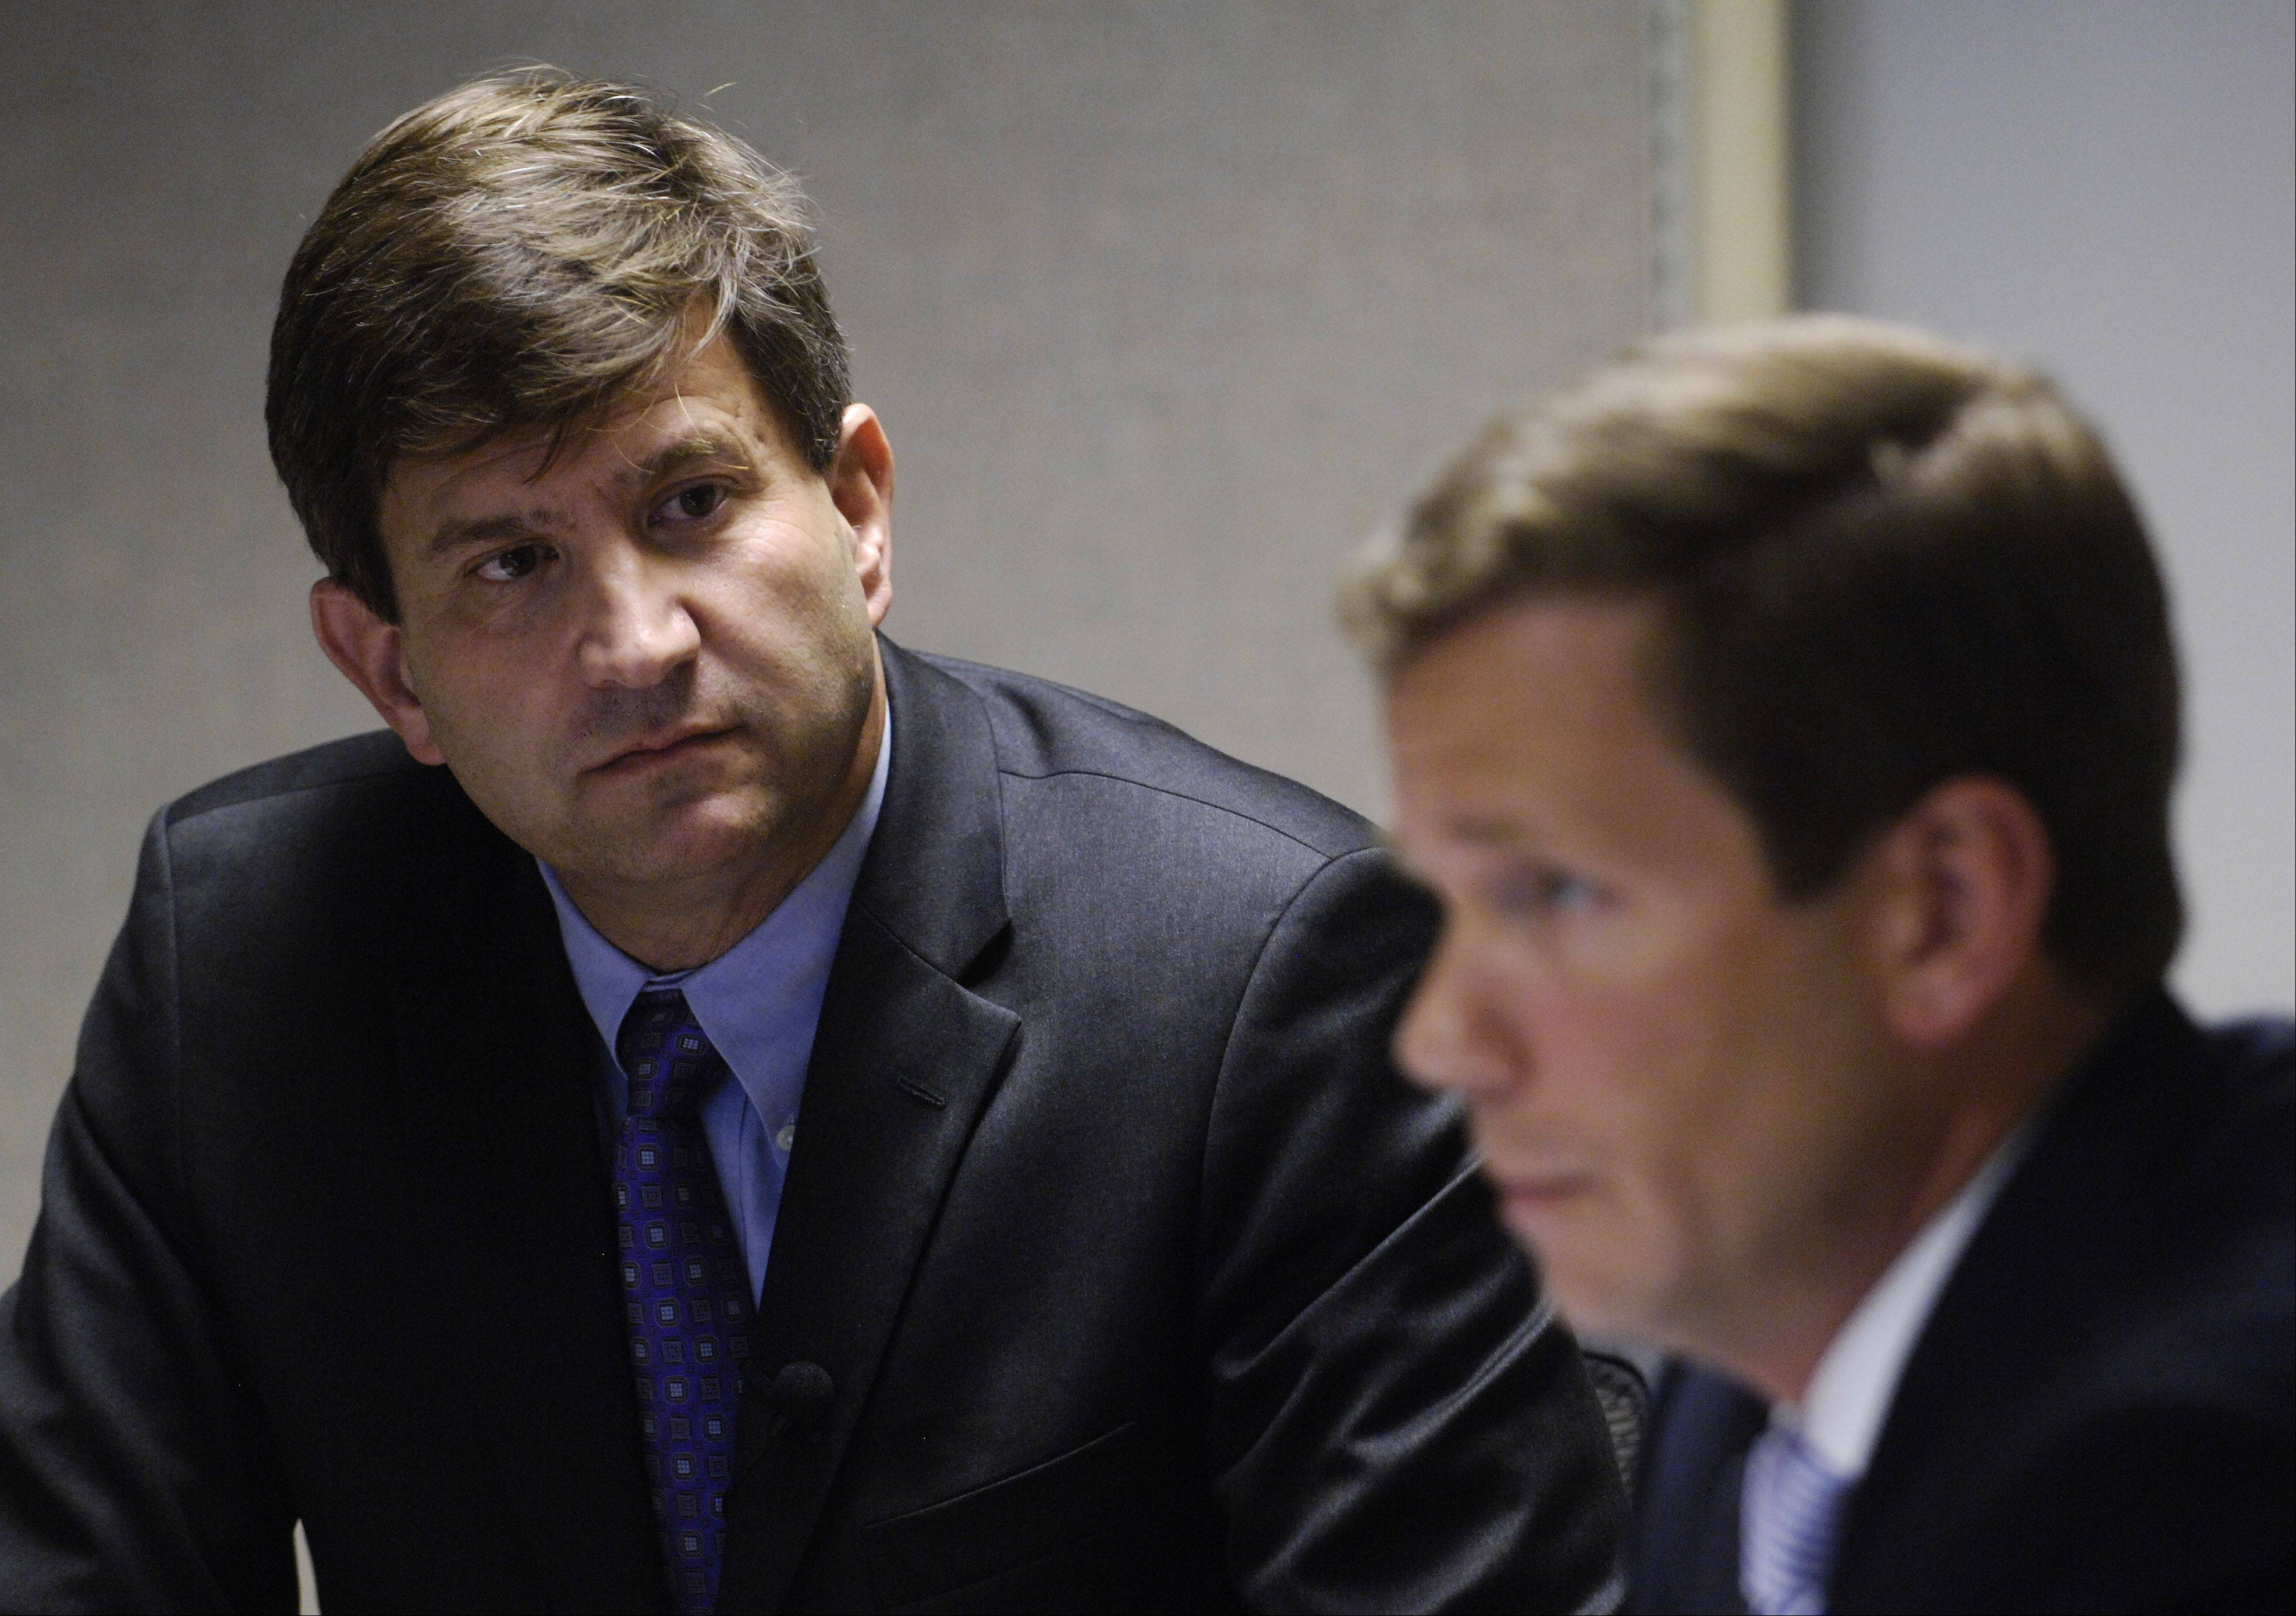 Brad Schneider, left, listens to Robert Dold speak to reporters and editors at the Daily Herald.